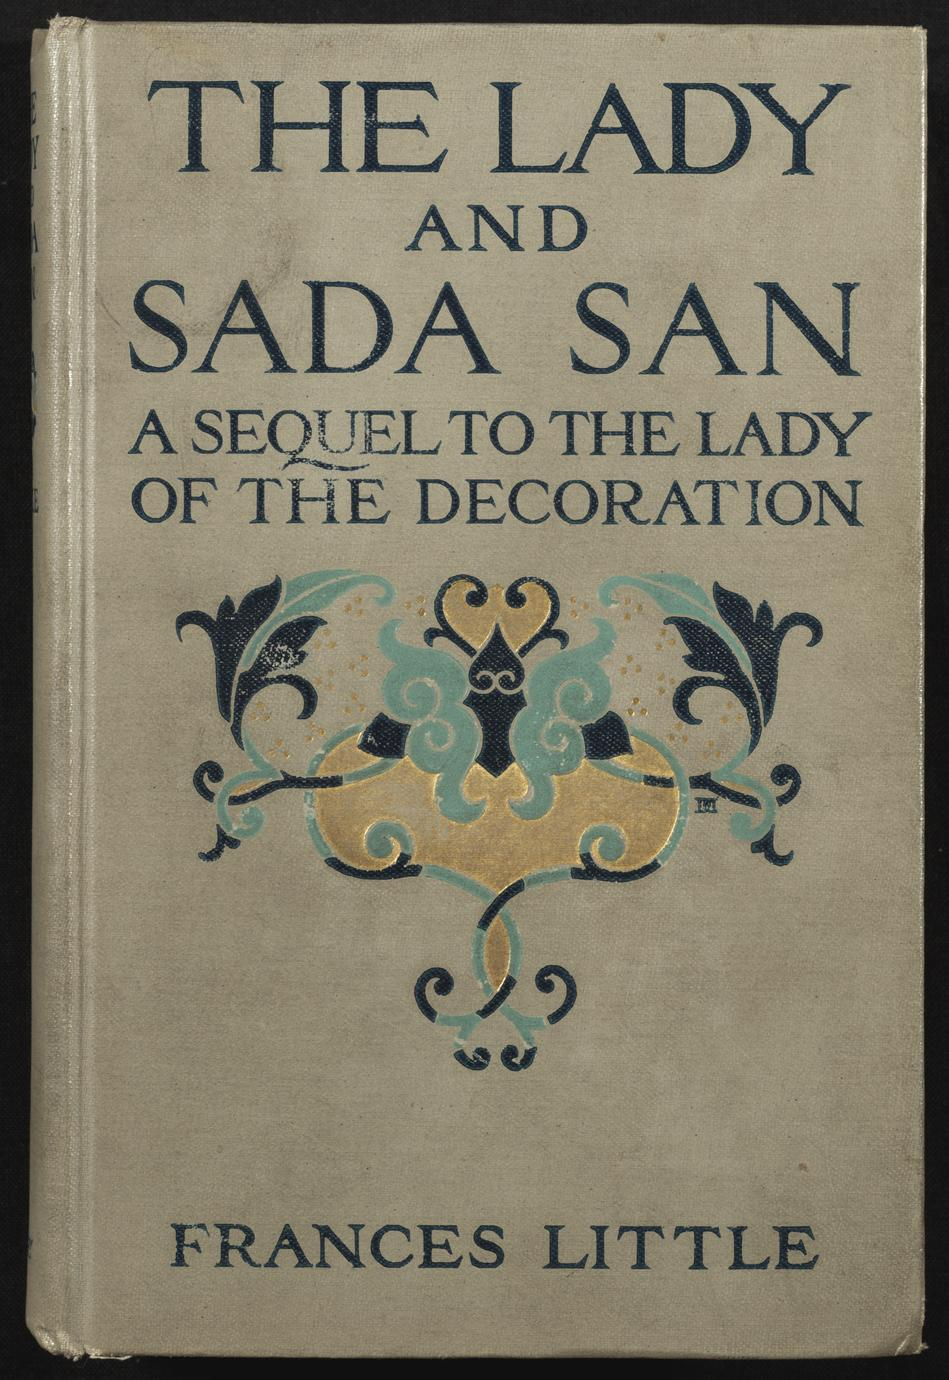 Lady and Sada San ; a sequel to The lady of the decoration (1 of 3)